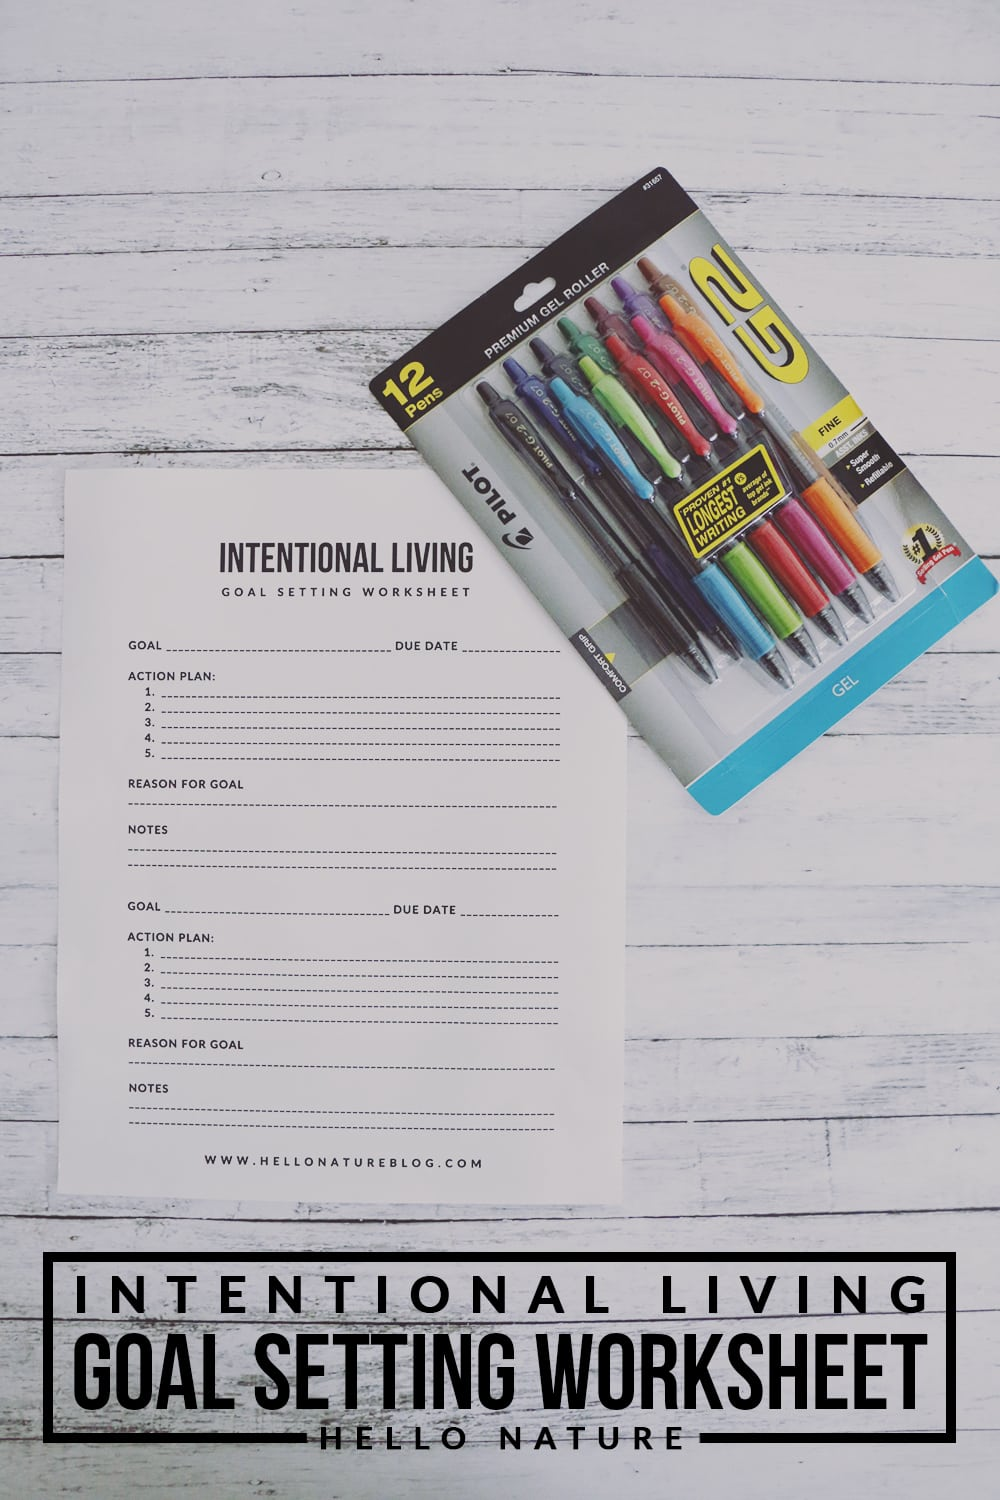 Living intentionally doesn't have to be hard. This goal setting worksheet will help you achieve your mindful goals in no time!